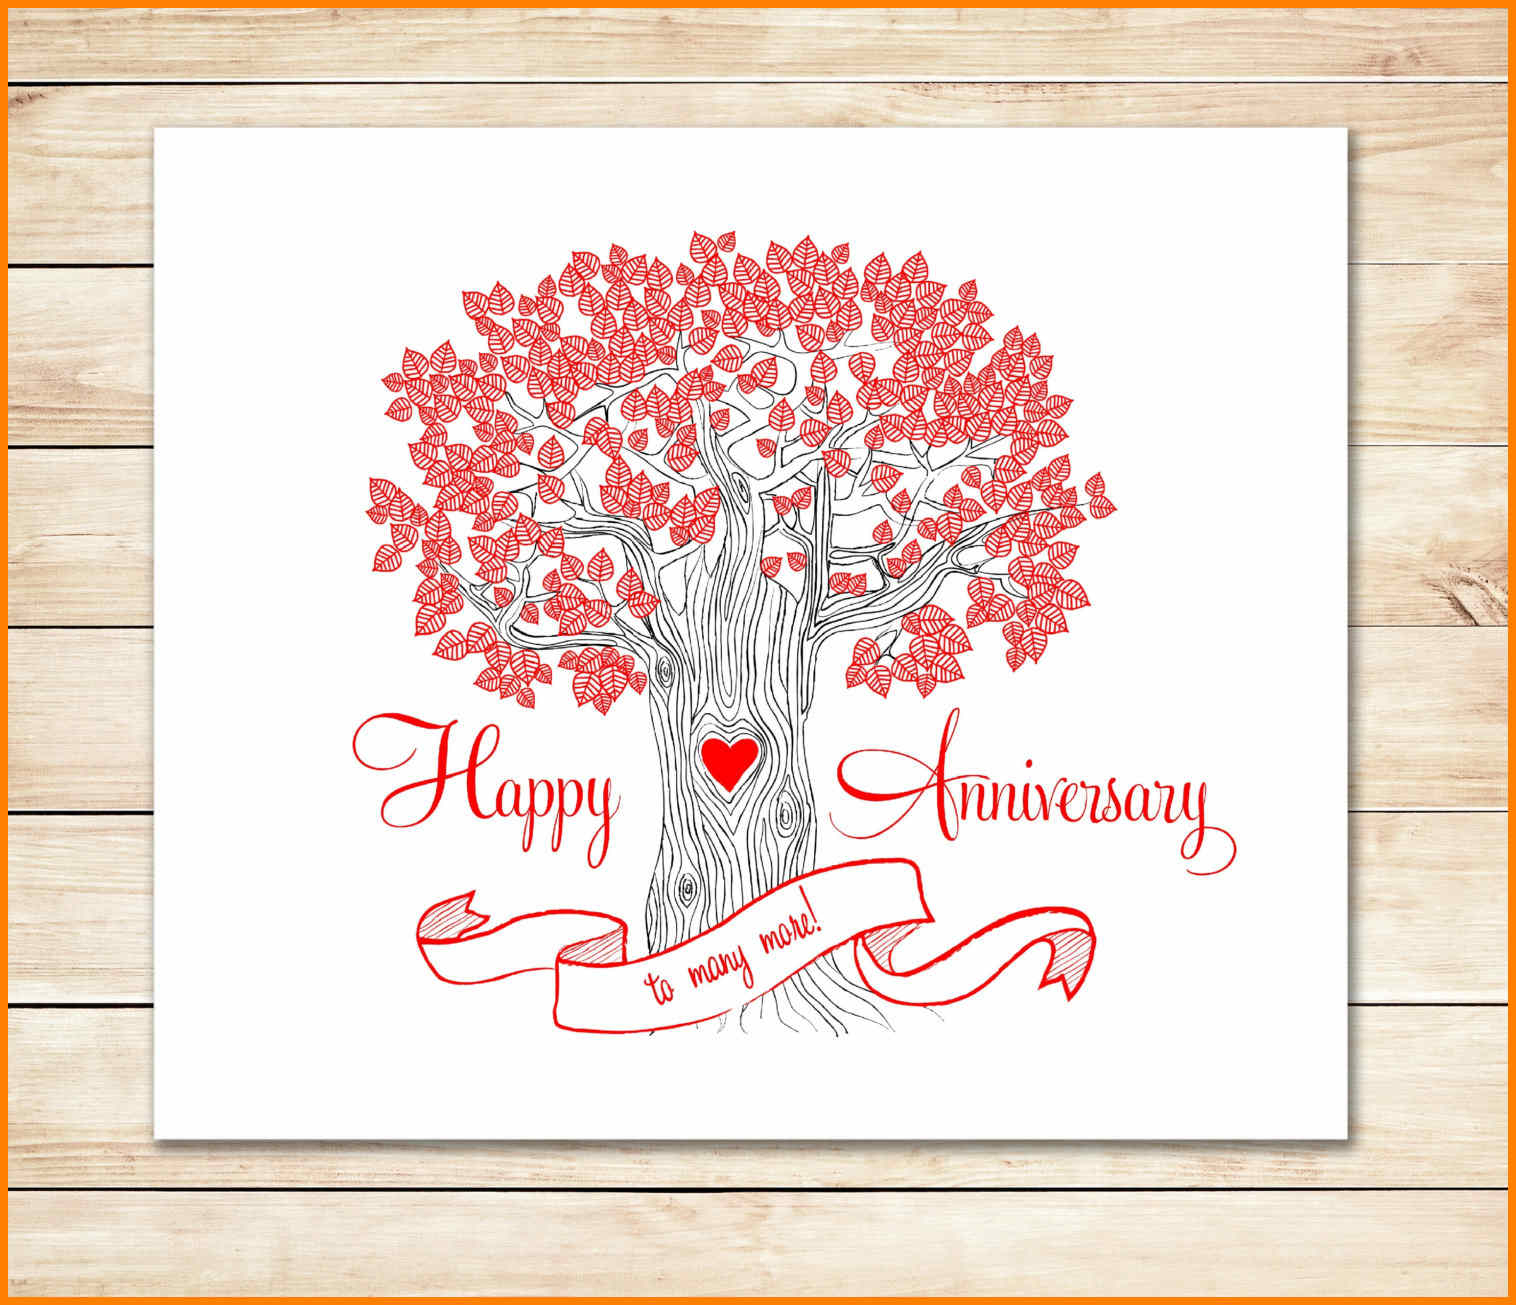 8+ Happy Anniversary Templates Free | Plastic Mouldings Within Word Anniversary Card Template